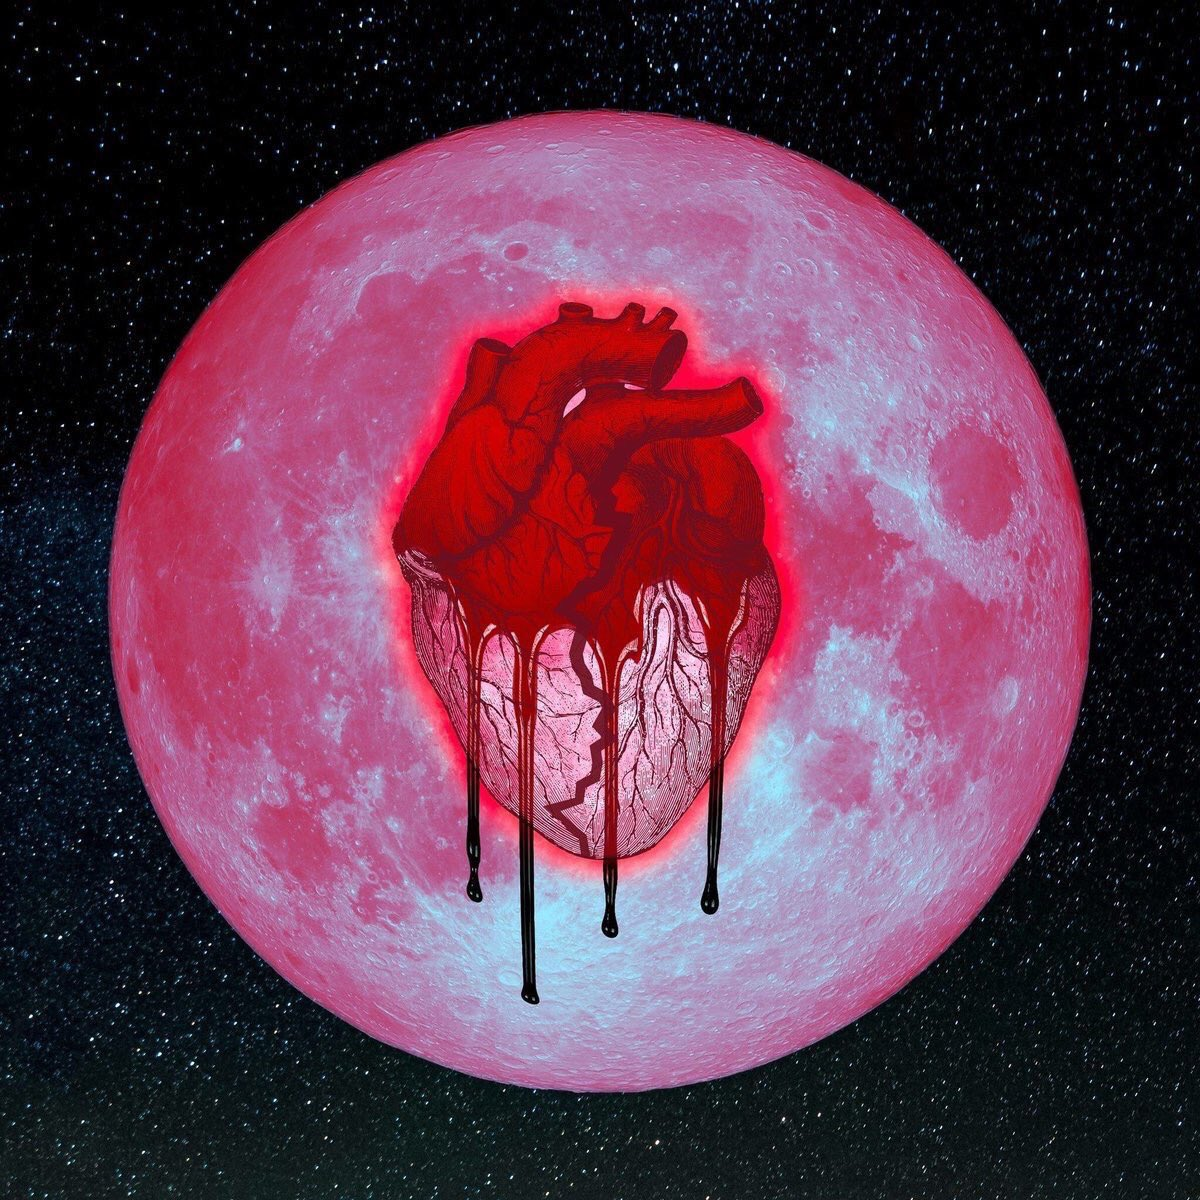 #HeartbreakOnAFullMoon ���� https://t.co/DSgT1oHFQG https://t.co/DfXk6cvTMu